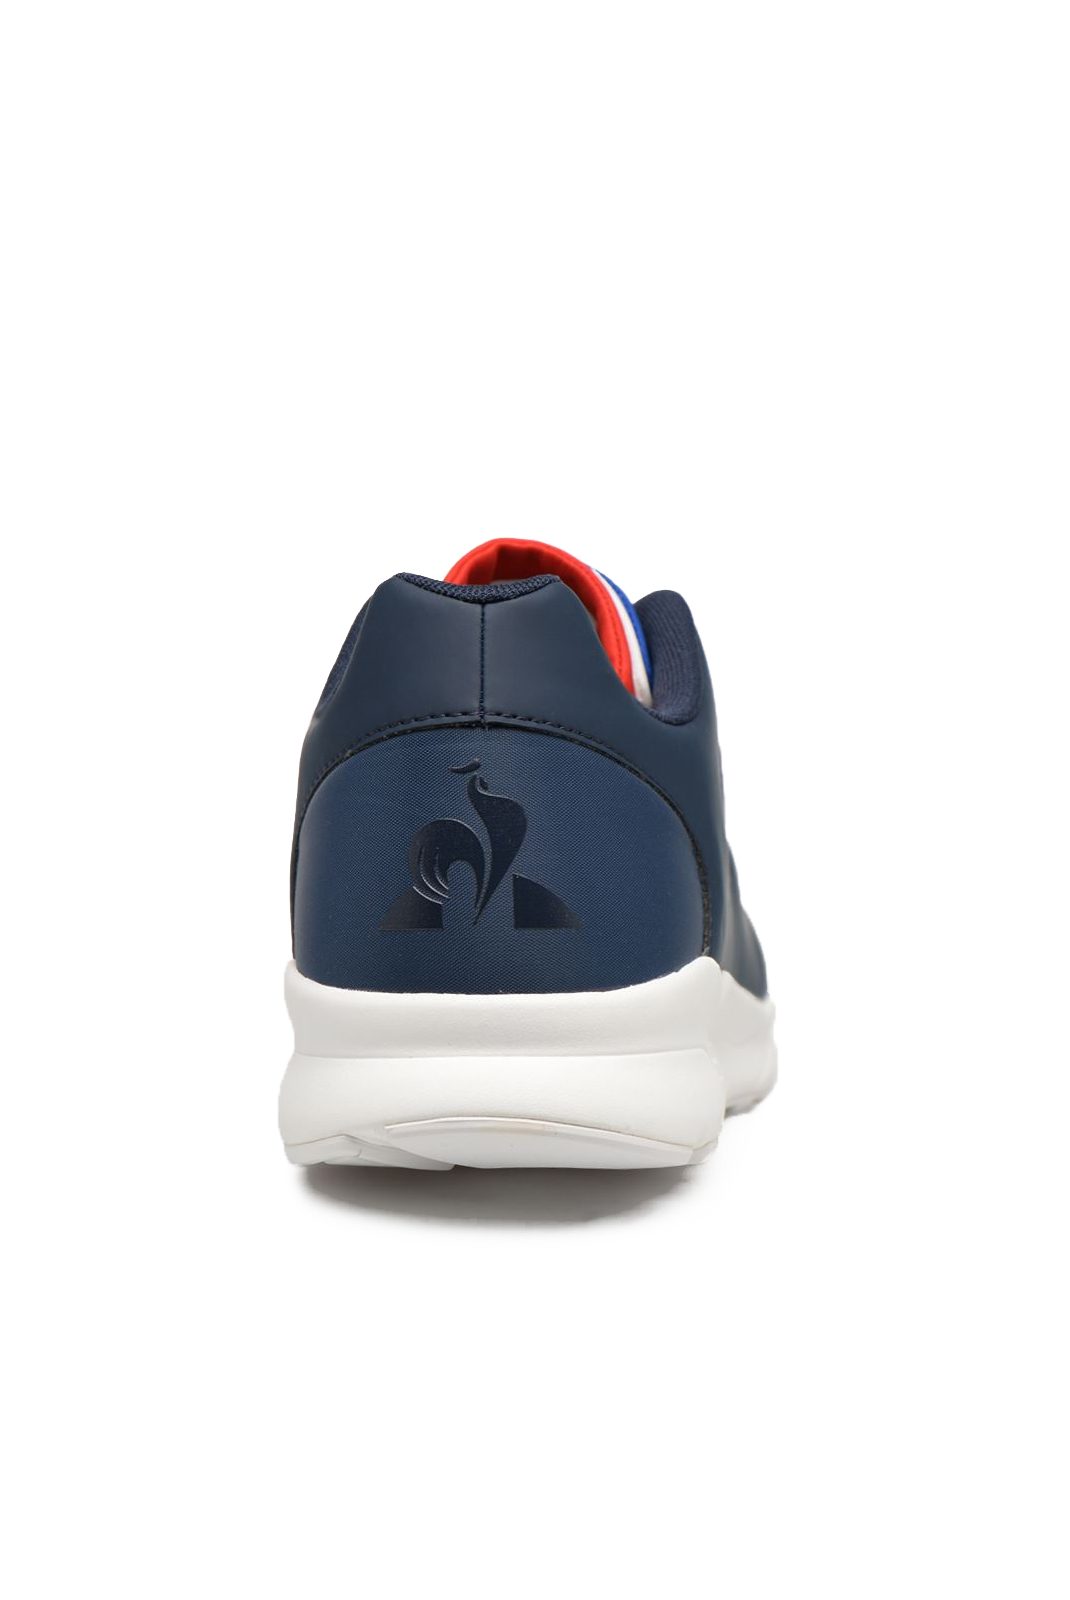 Baskets / Sport  Le coq sportif 1910462 ZEP MONOCHROME BBR DRESS BLUE